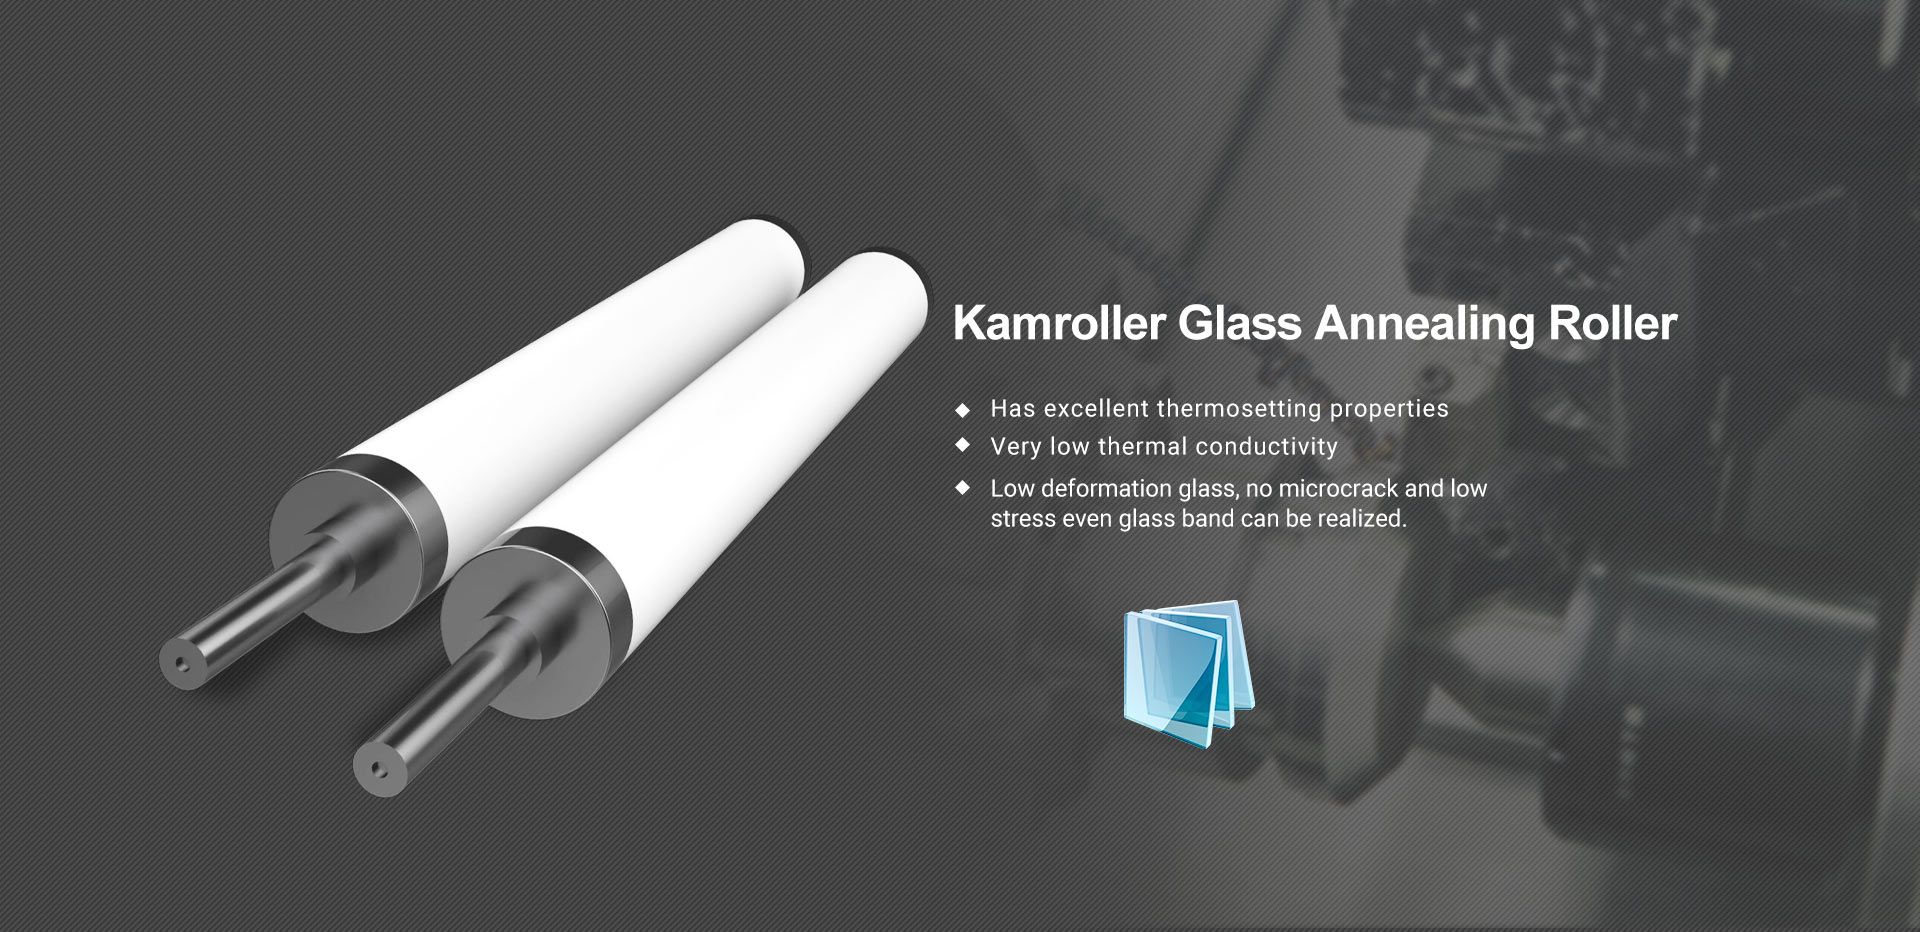 Kamroller Glass Annealing ғалтаки